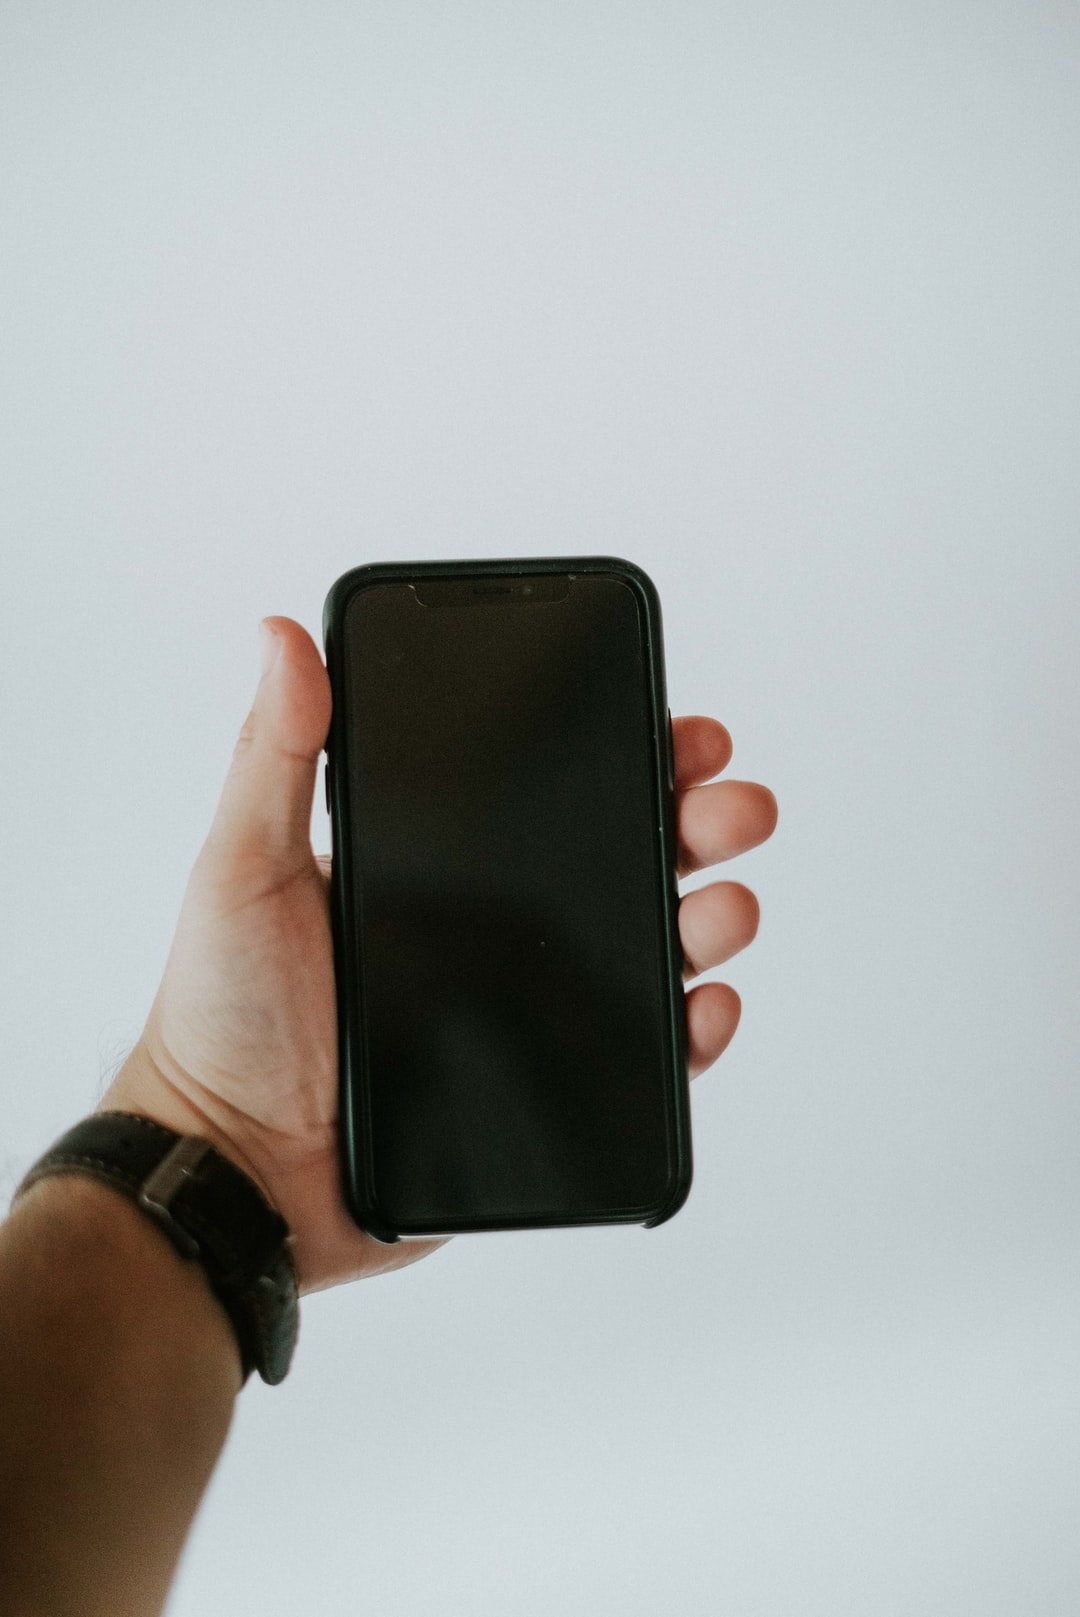 Phone and Hand.